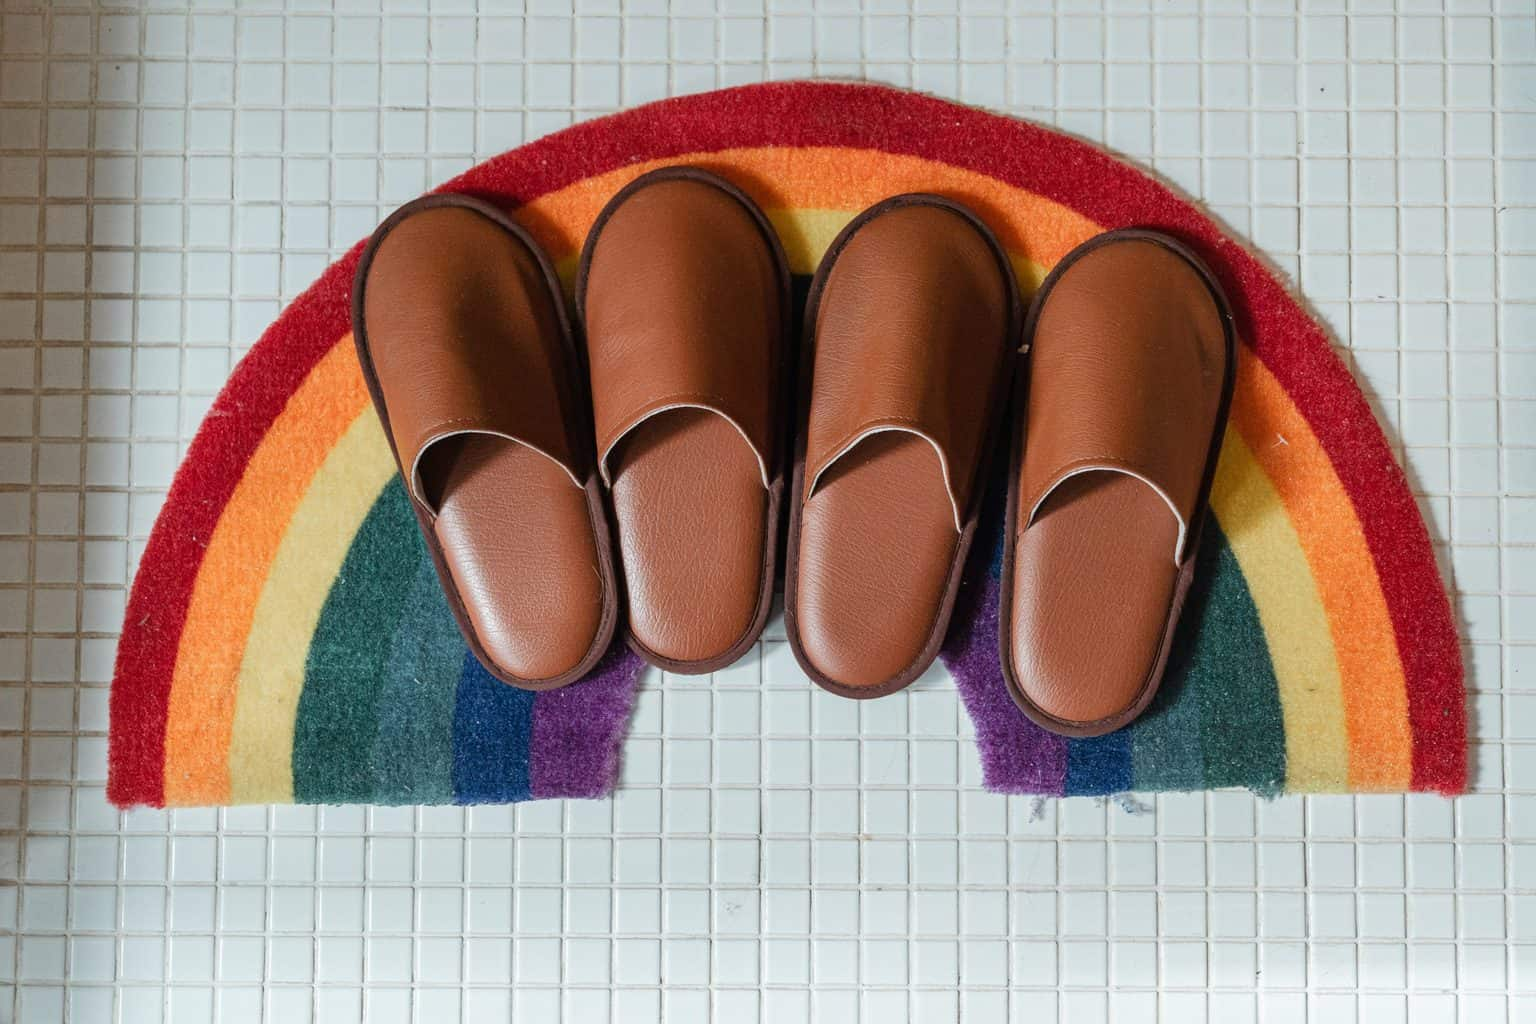 Brown slippers on a rainbow colored bath mat